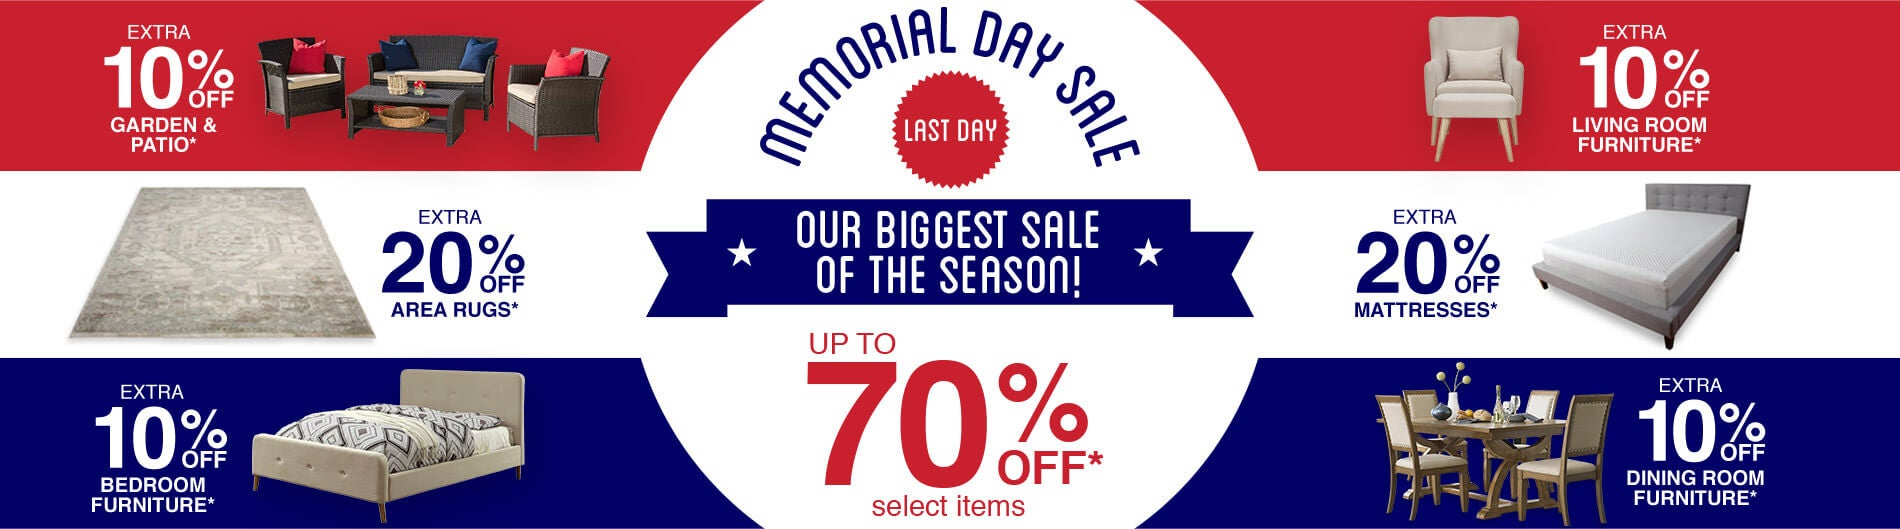 Memorial Day - Last Day Up To 70% Off*